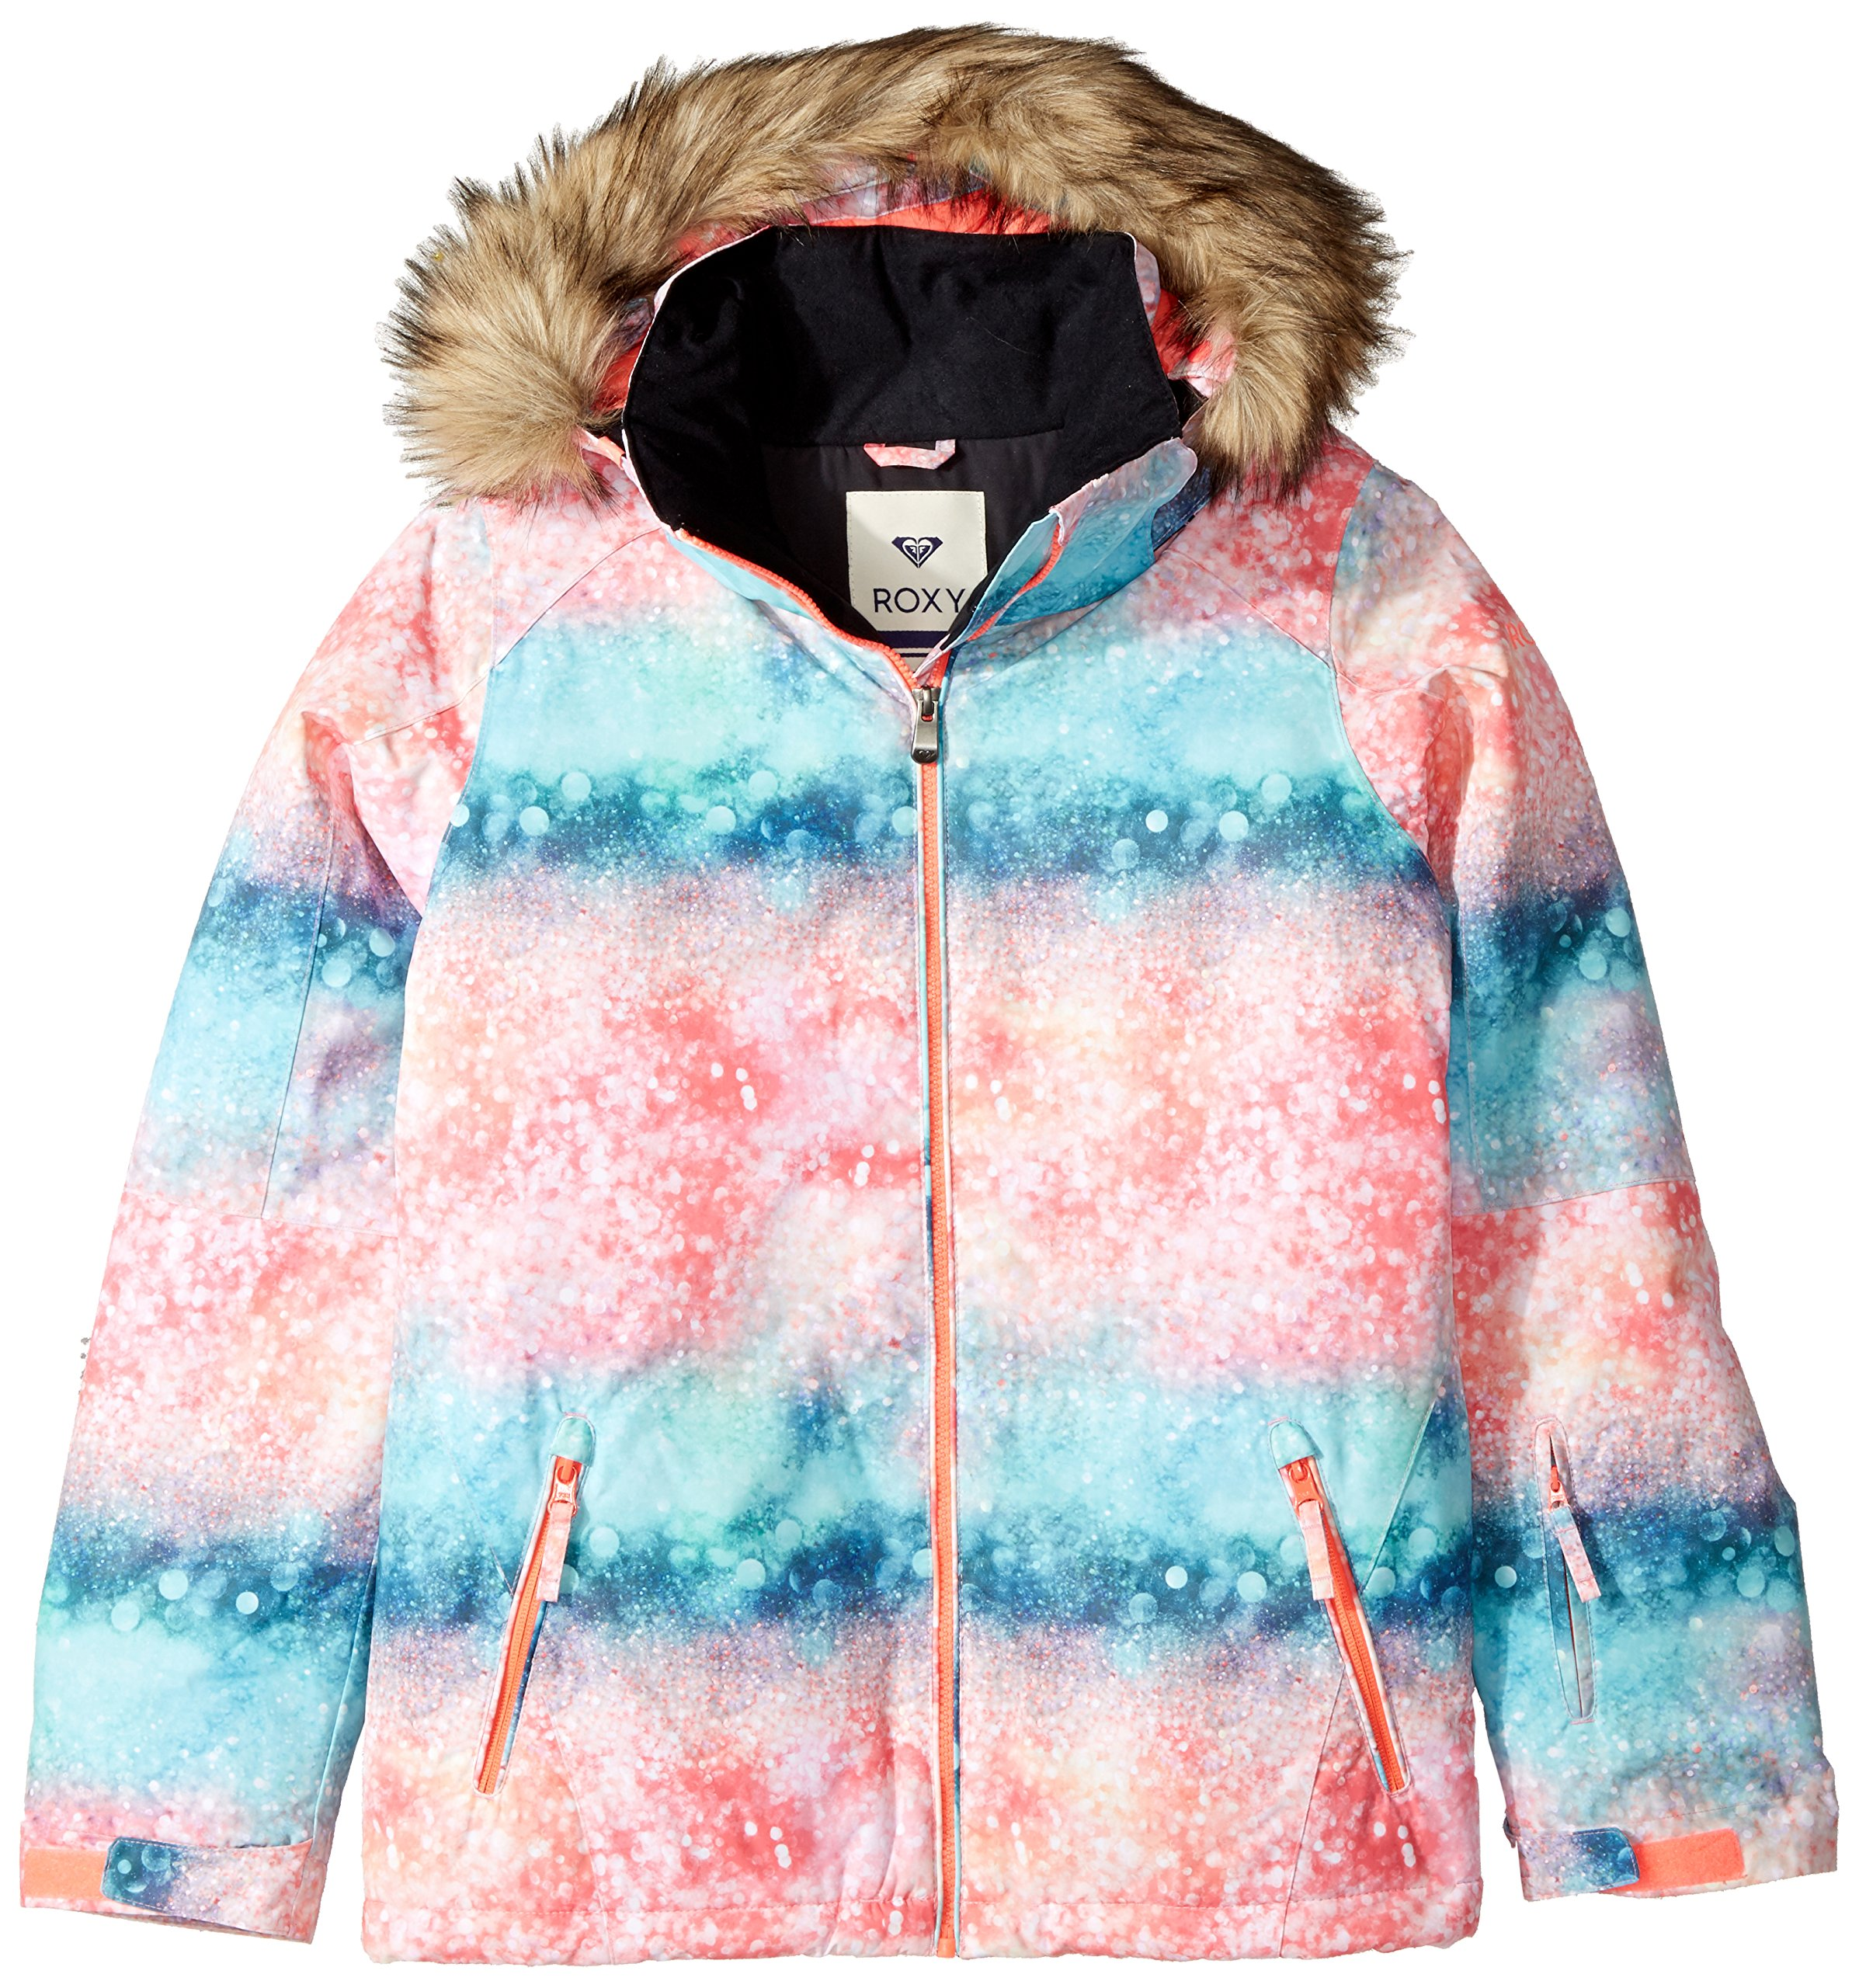 Roxy Big Girls' American Pie Snow Jacket, Neon Grapefruit_Solargradient, 16/XXL by Roxy